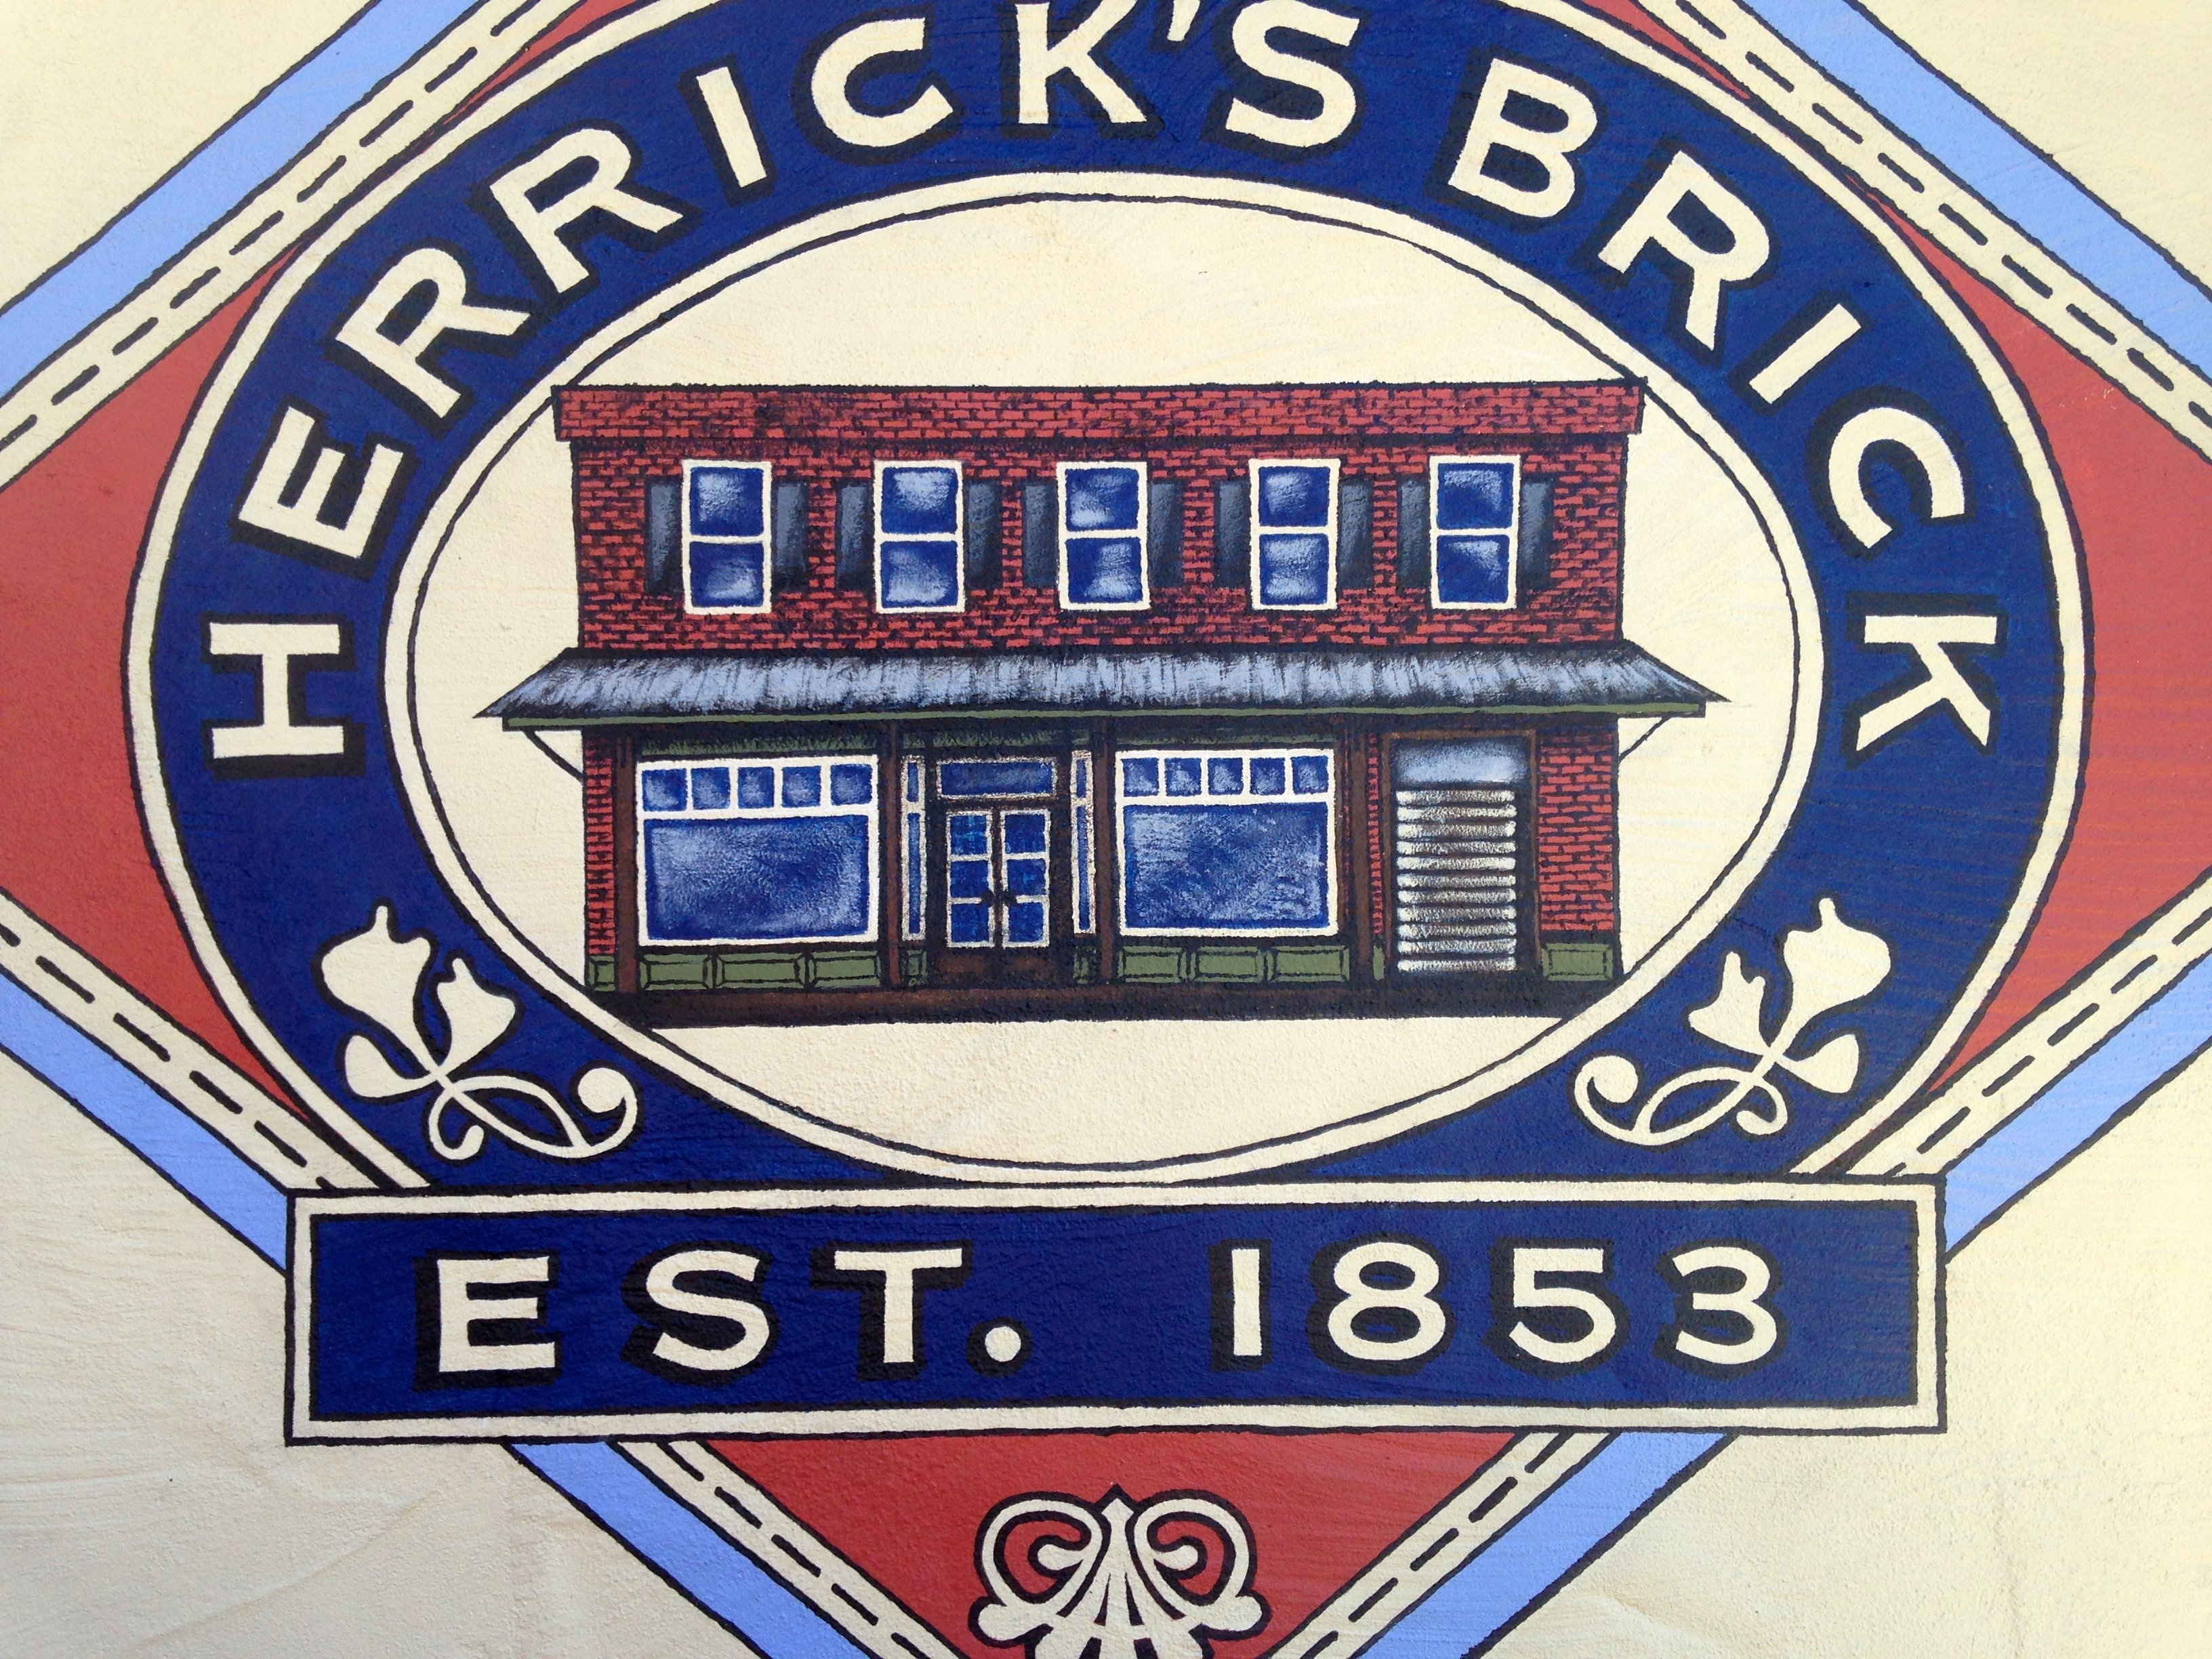 Herricks Brick